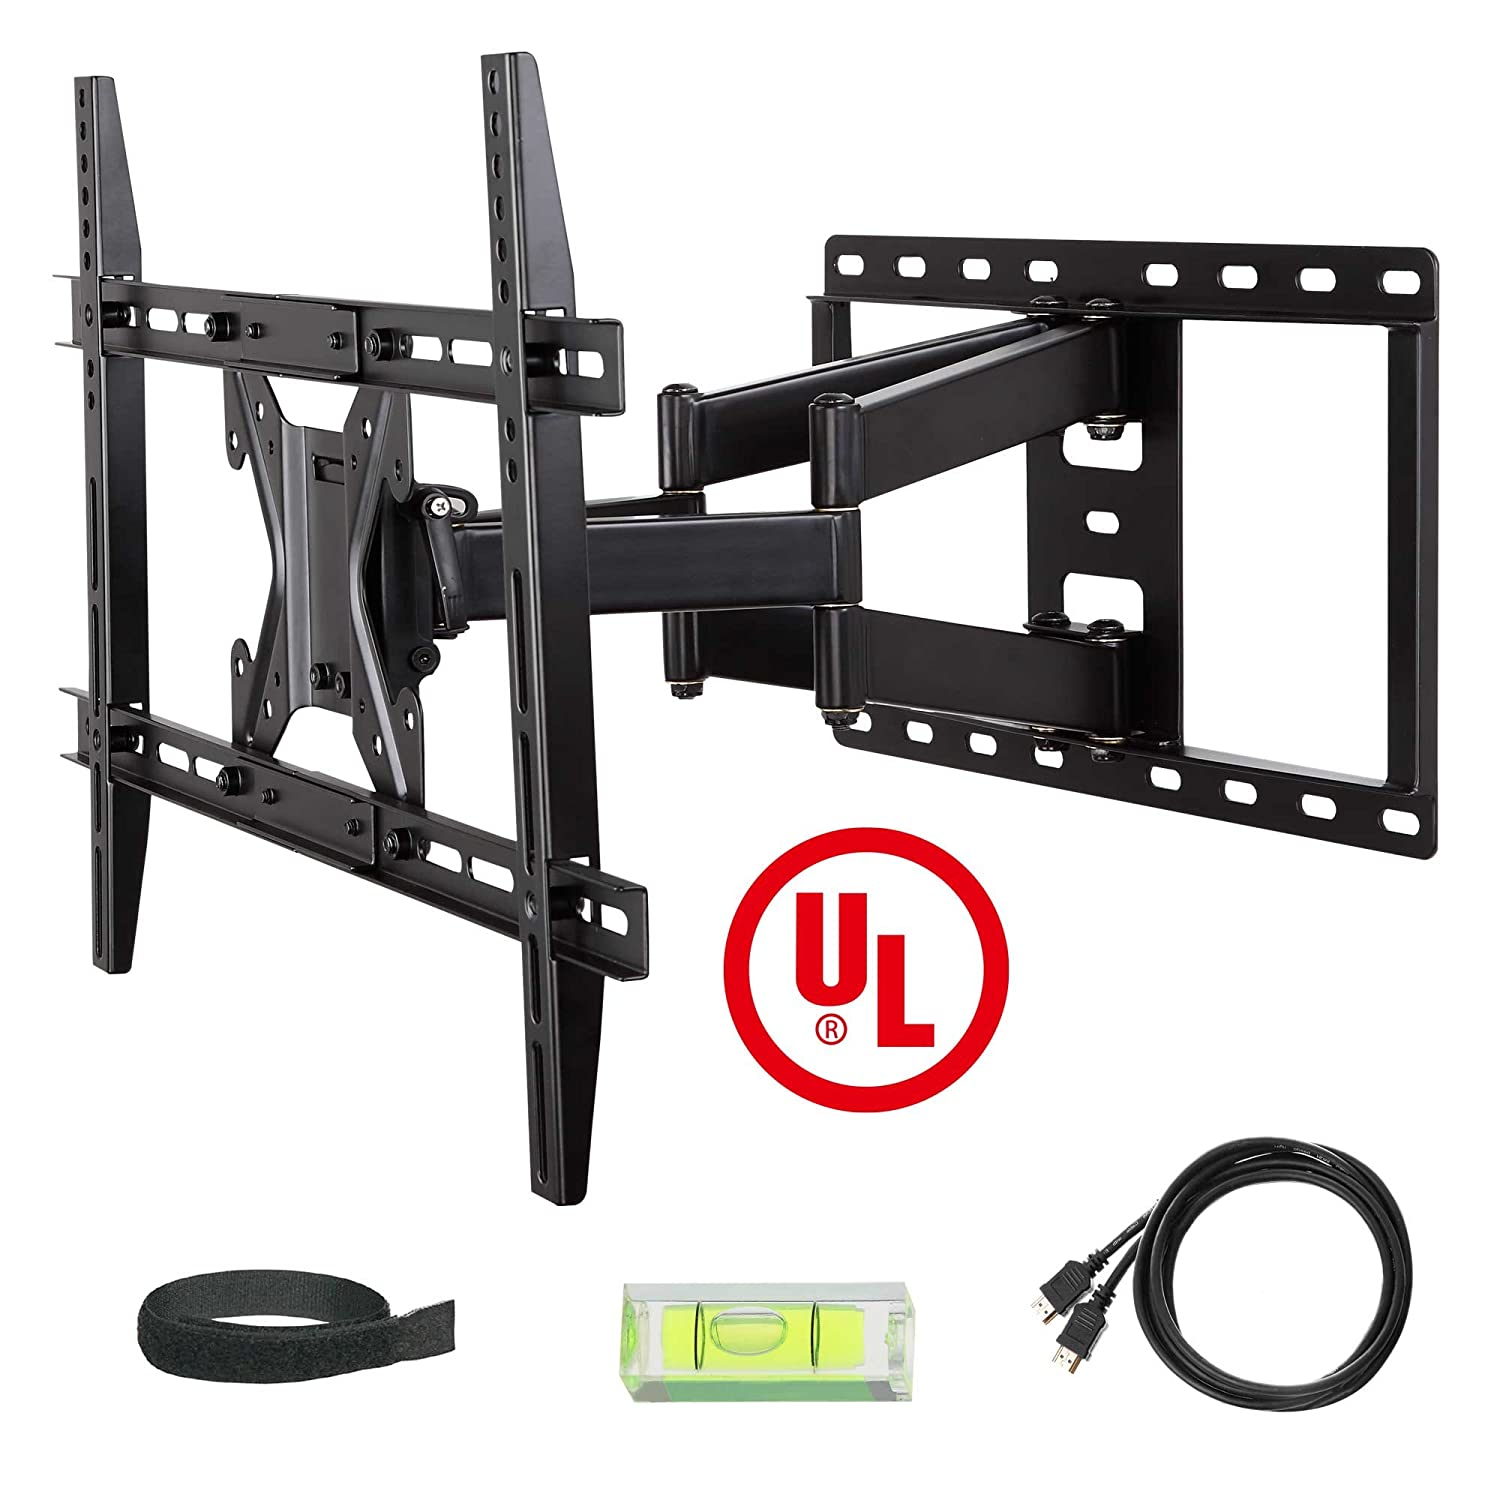 Mounting Dream TV Wall Mount Bracket with Full Motion Dual Articulating Arm for 42-70 Inches LED, LCD and Plasma TVs